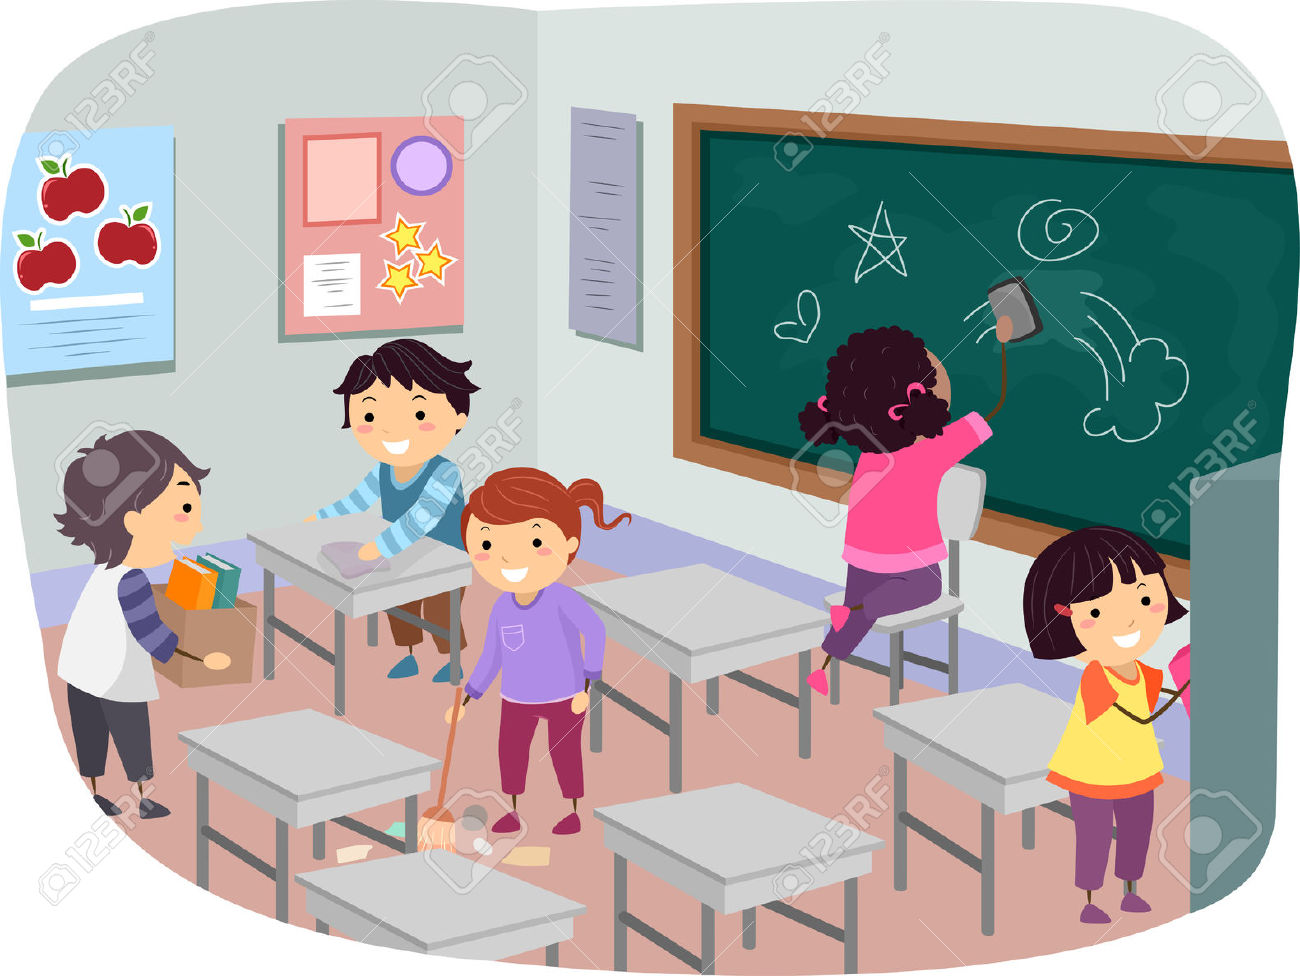 Illustration Of Stickman Kids Cleaning Their Classroom Together.